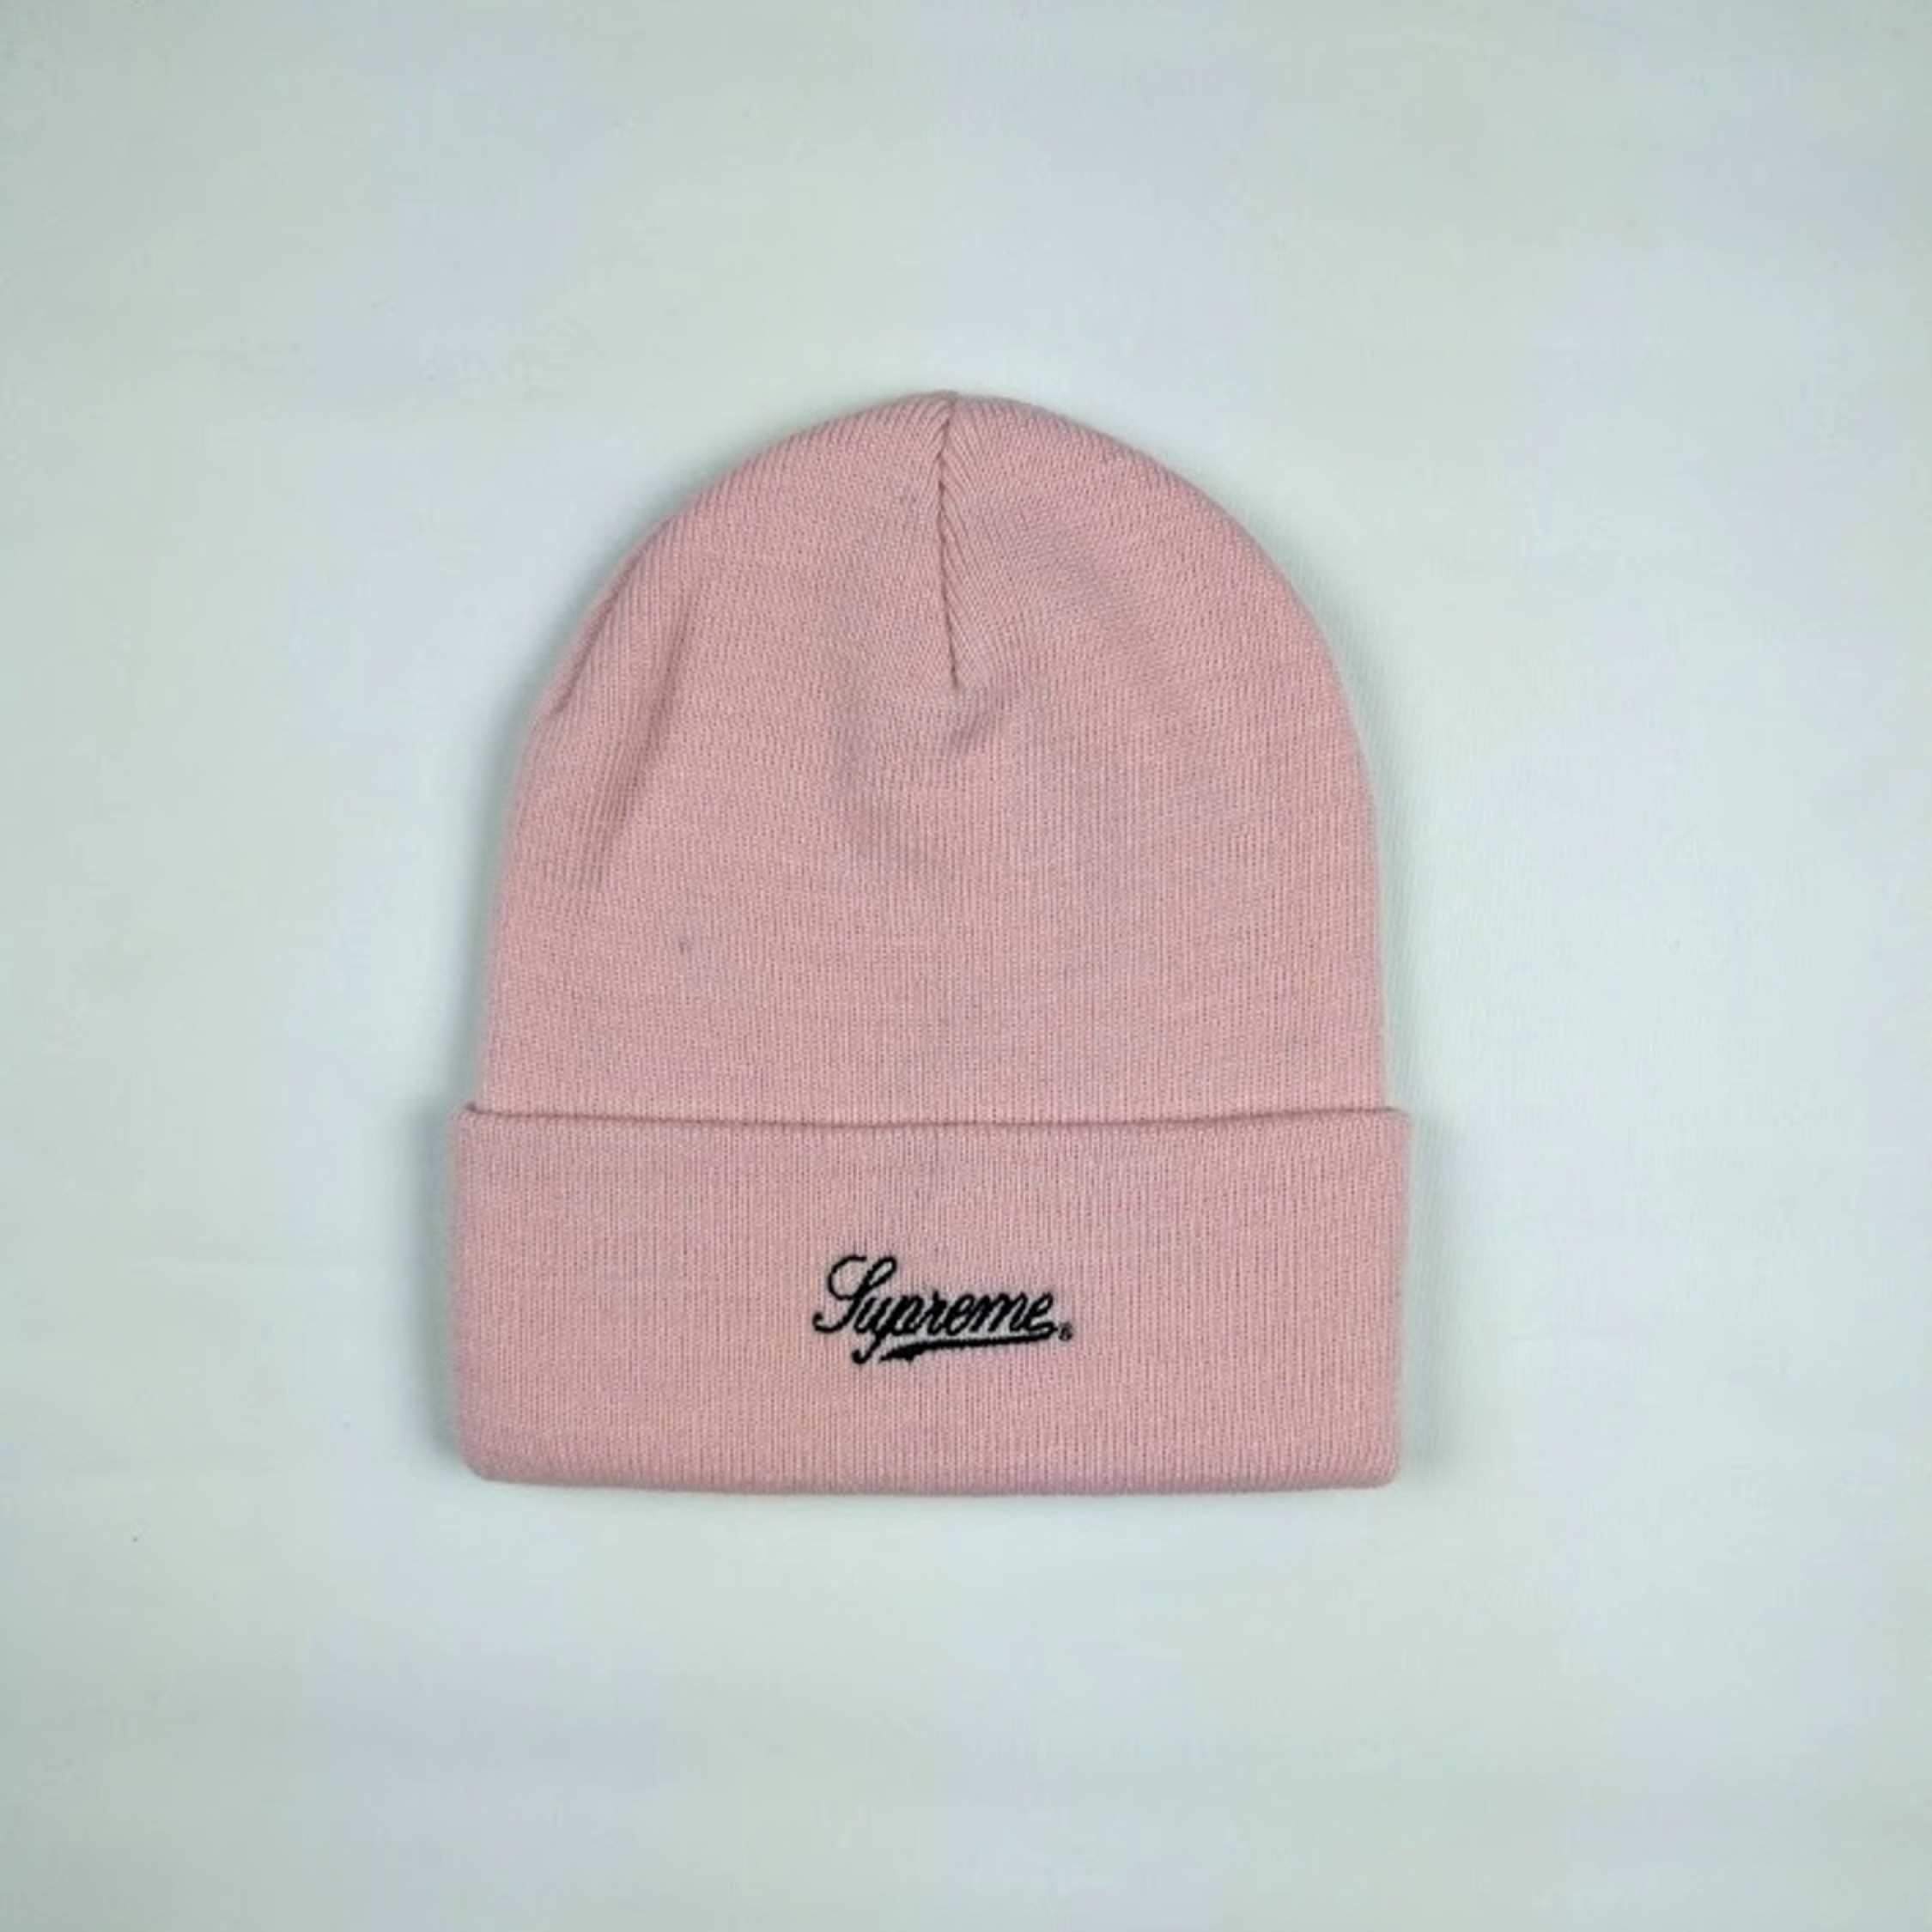 the sale of shoes buy sale shades of Supreme Beanie Pink New